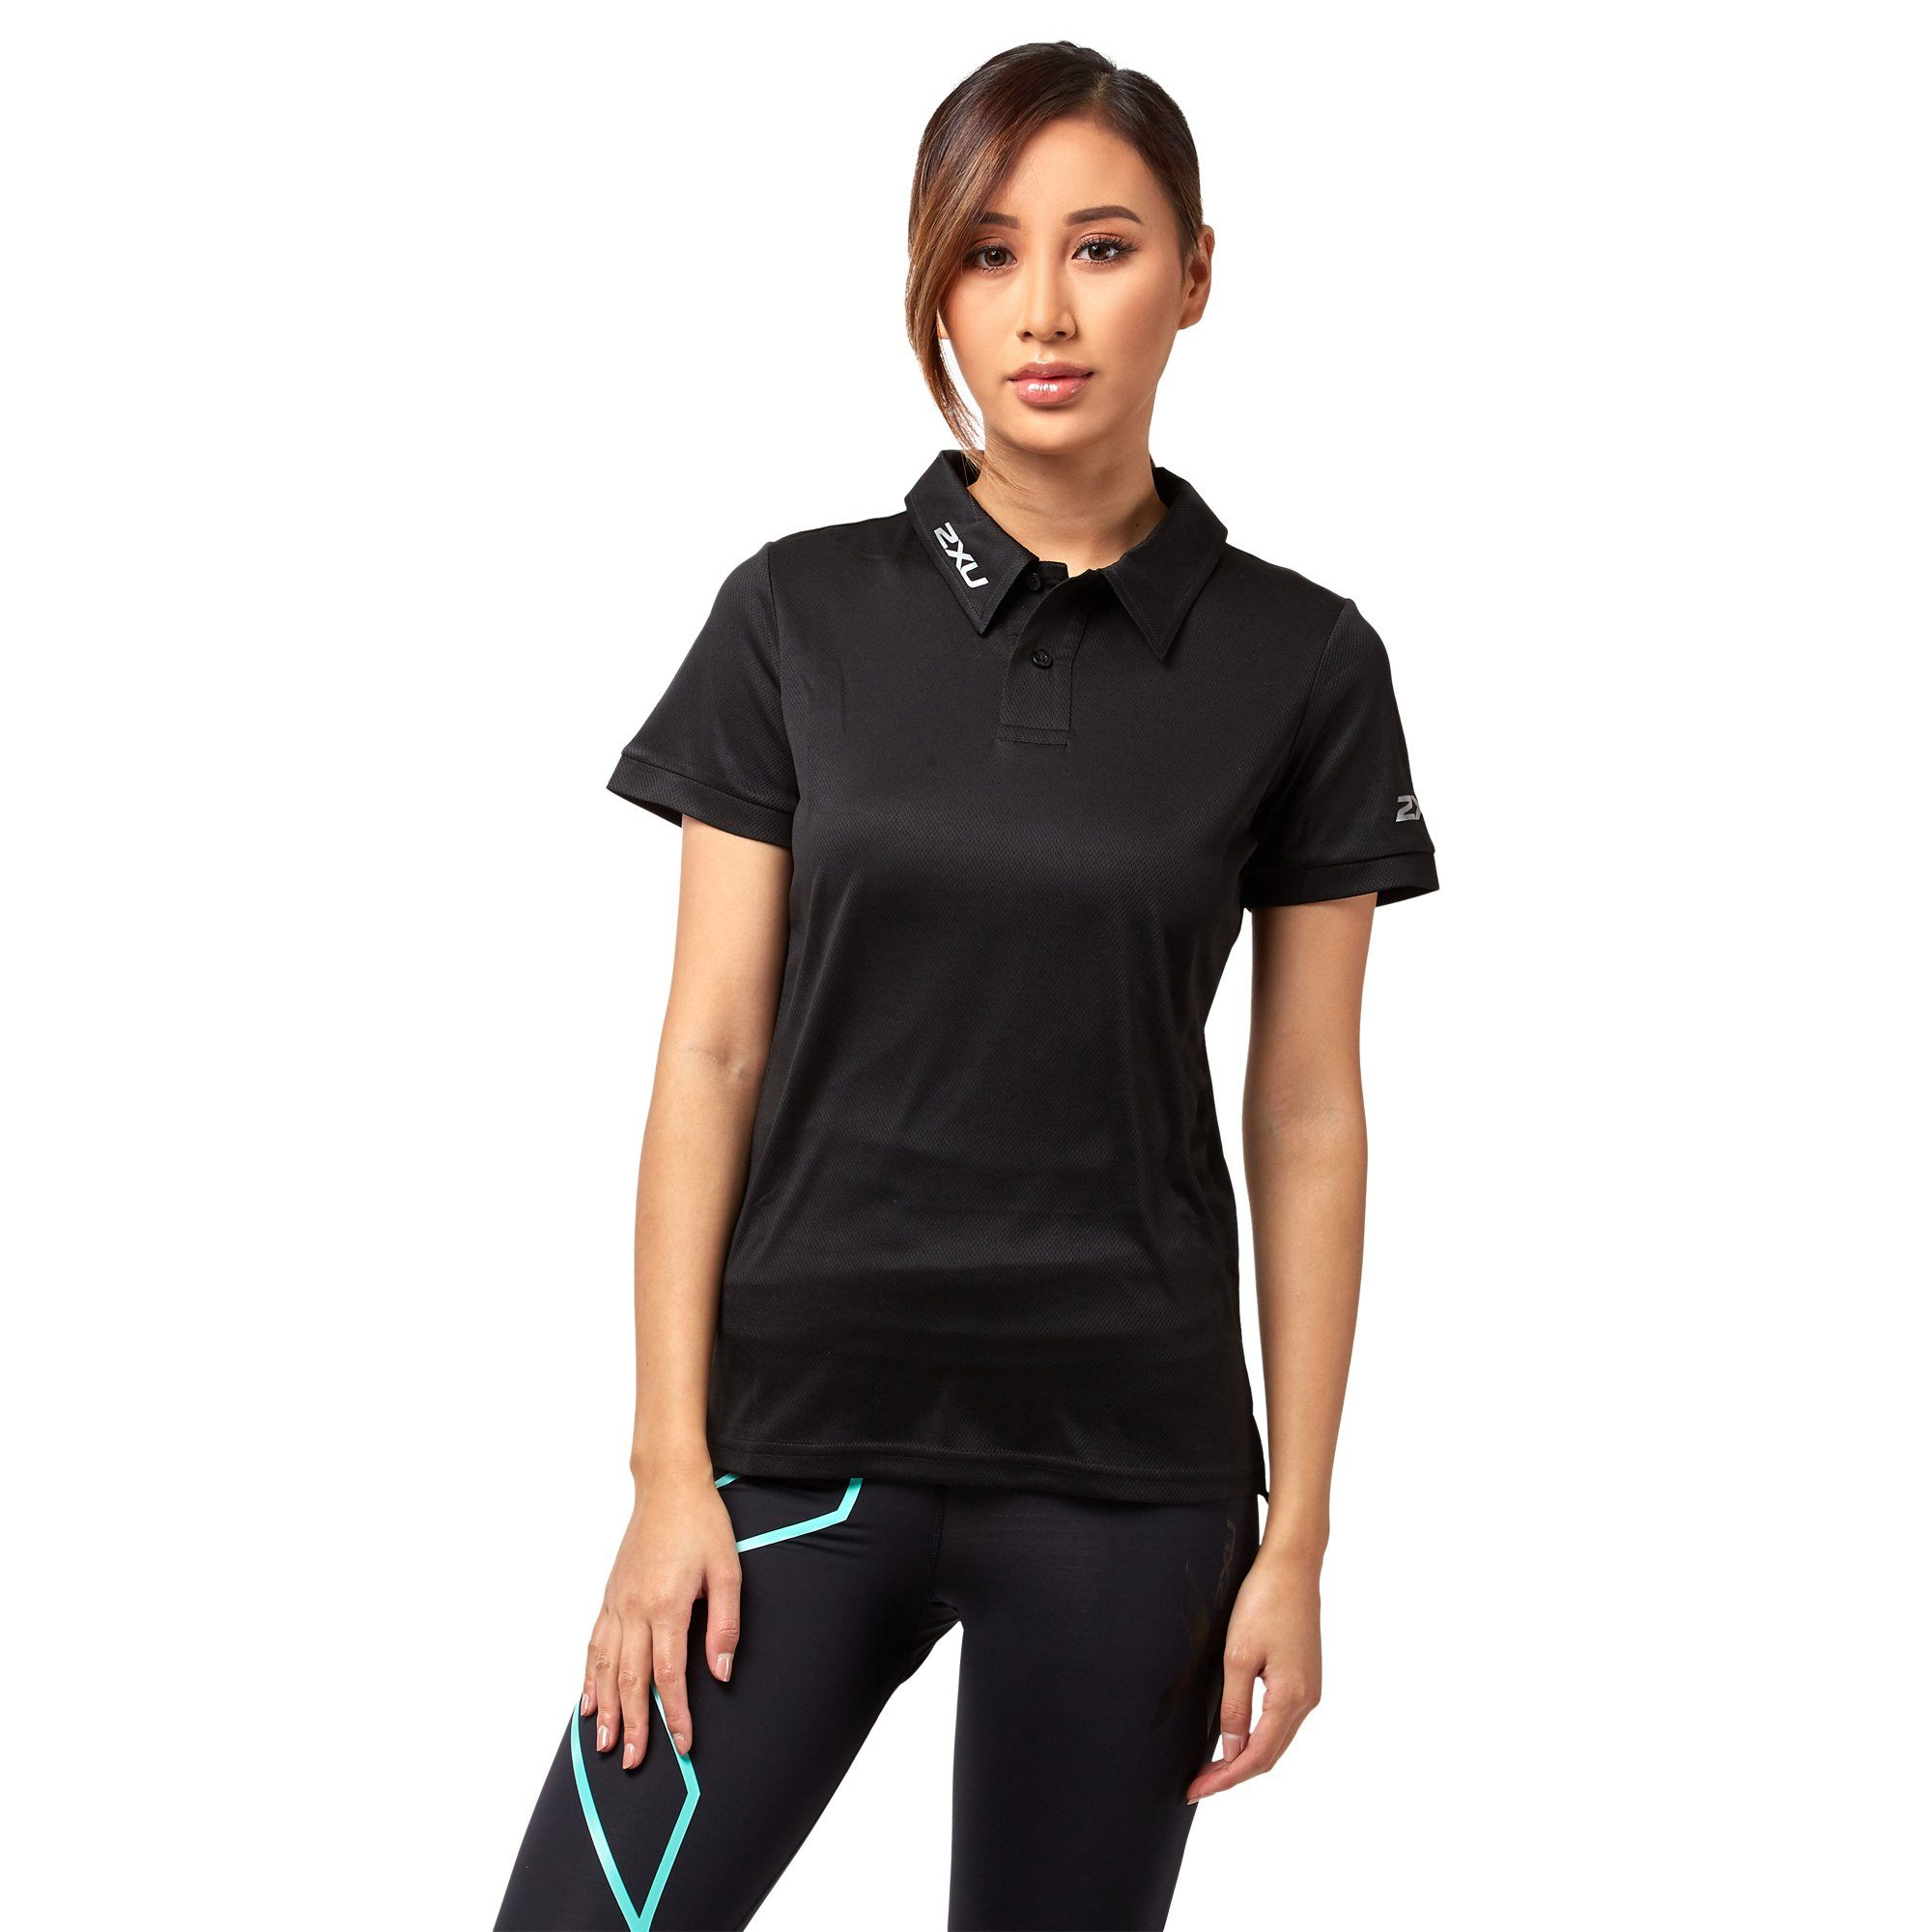 2XU Women's Performance Polo - Black Apparel 2XU